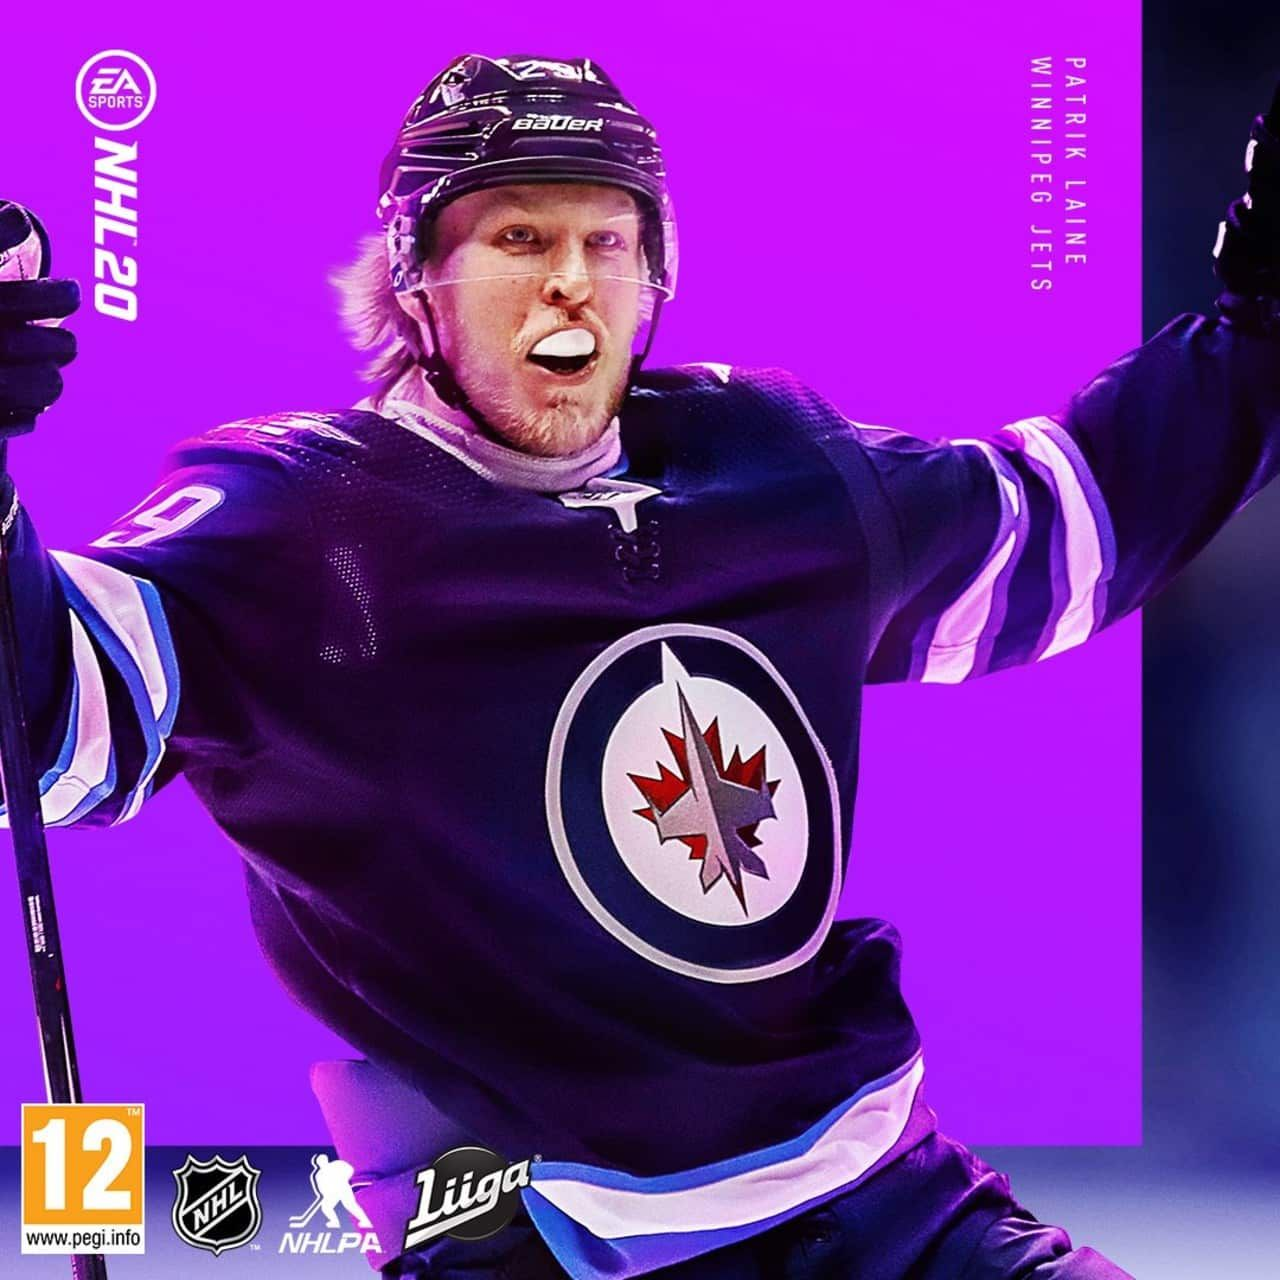 NHL 20 News and Notes International Cover Athletes